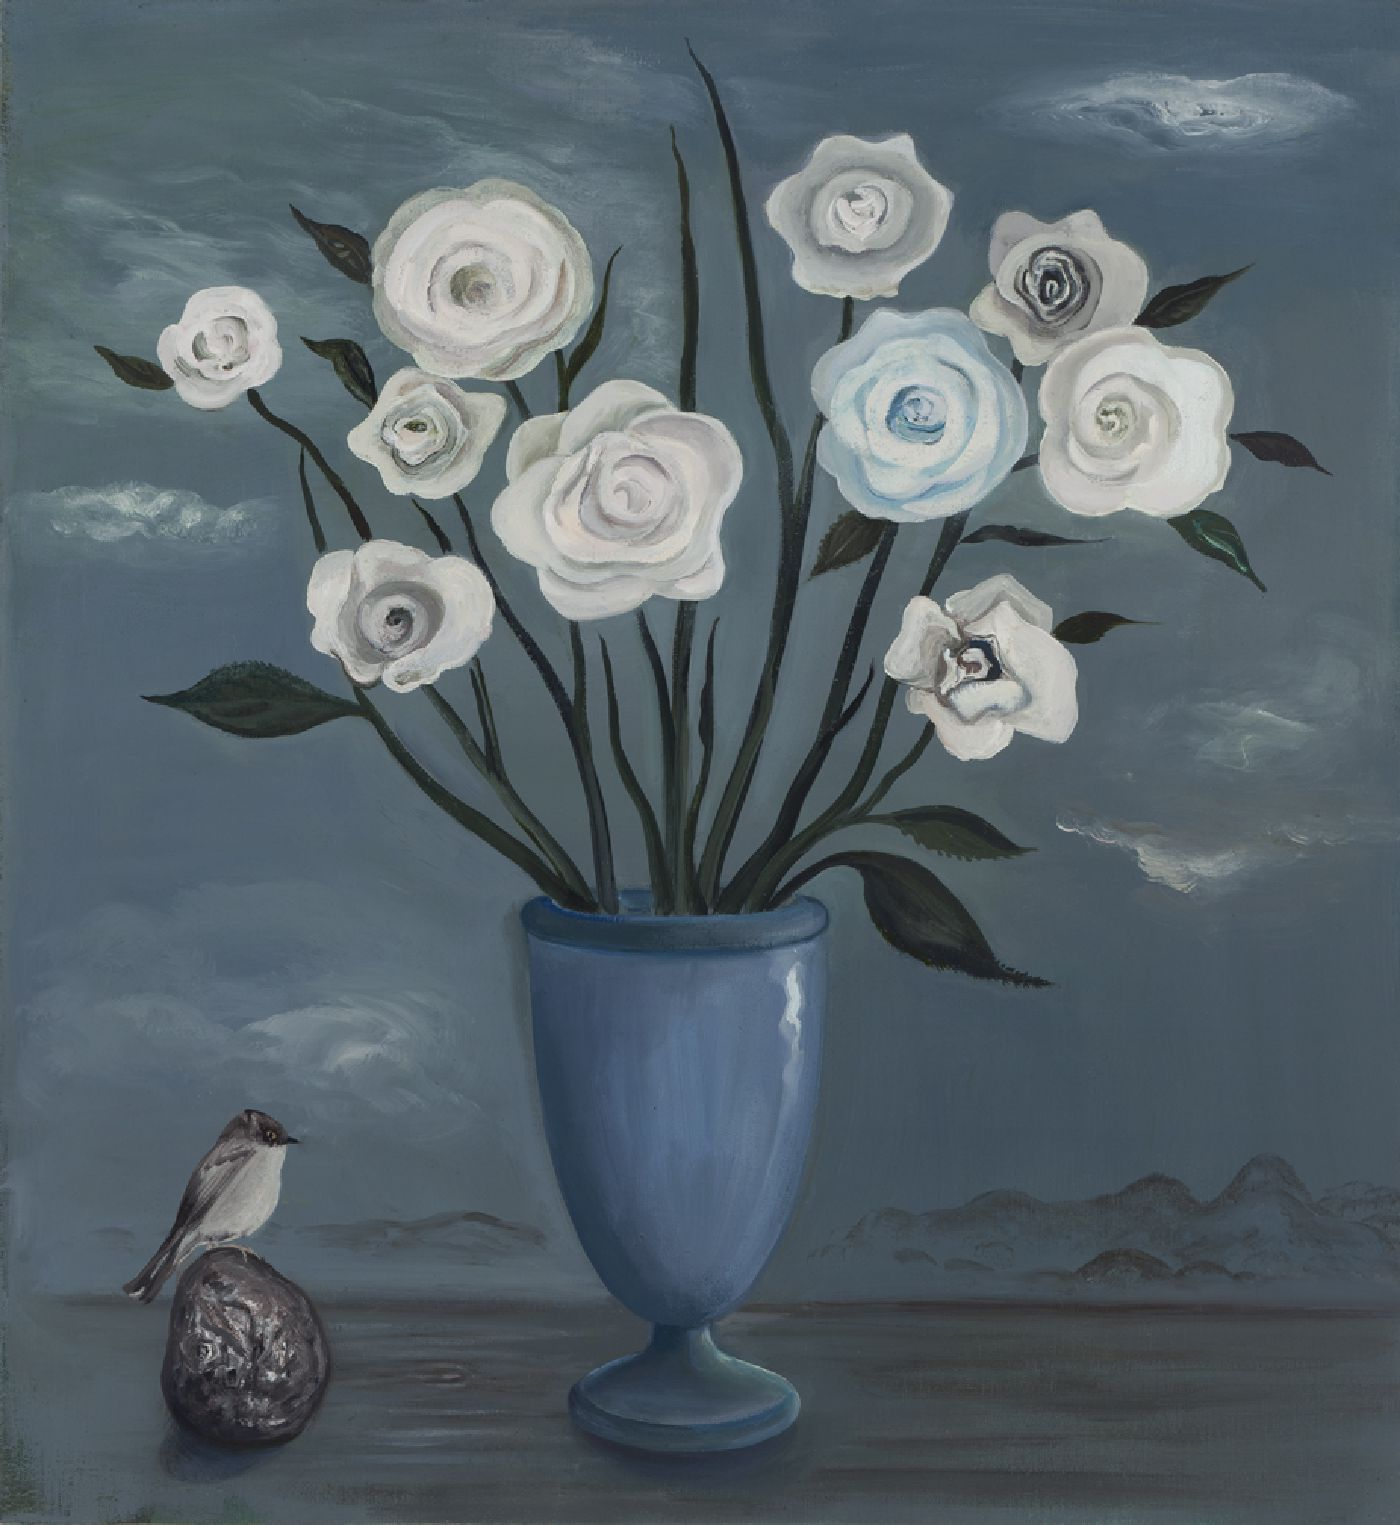 White Roses with Bird - oil on linen, 27 x 25 inches, 2016